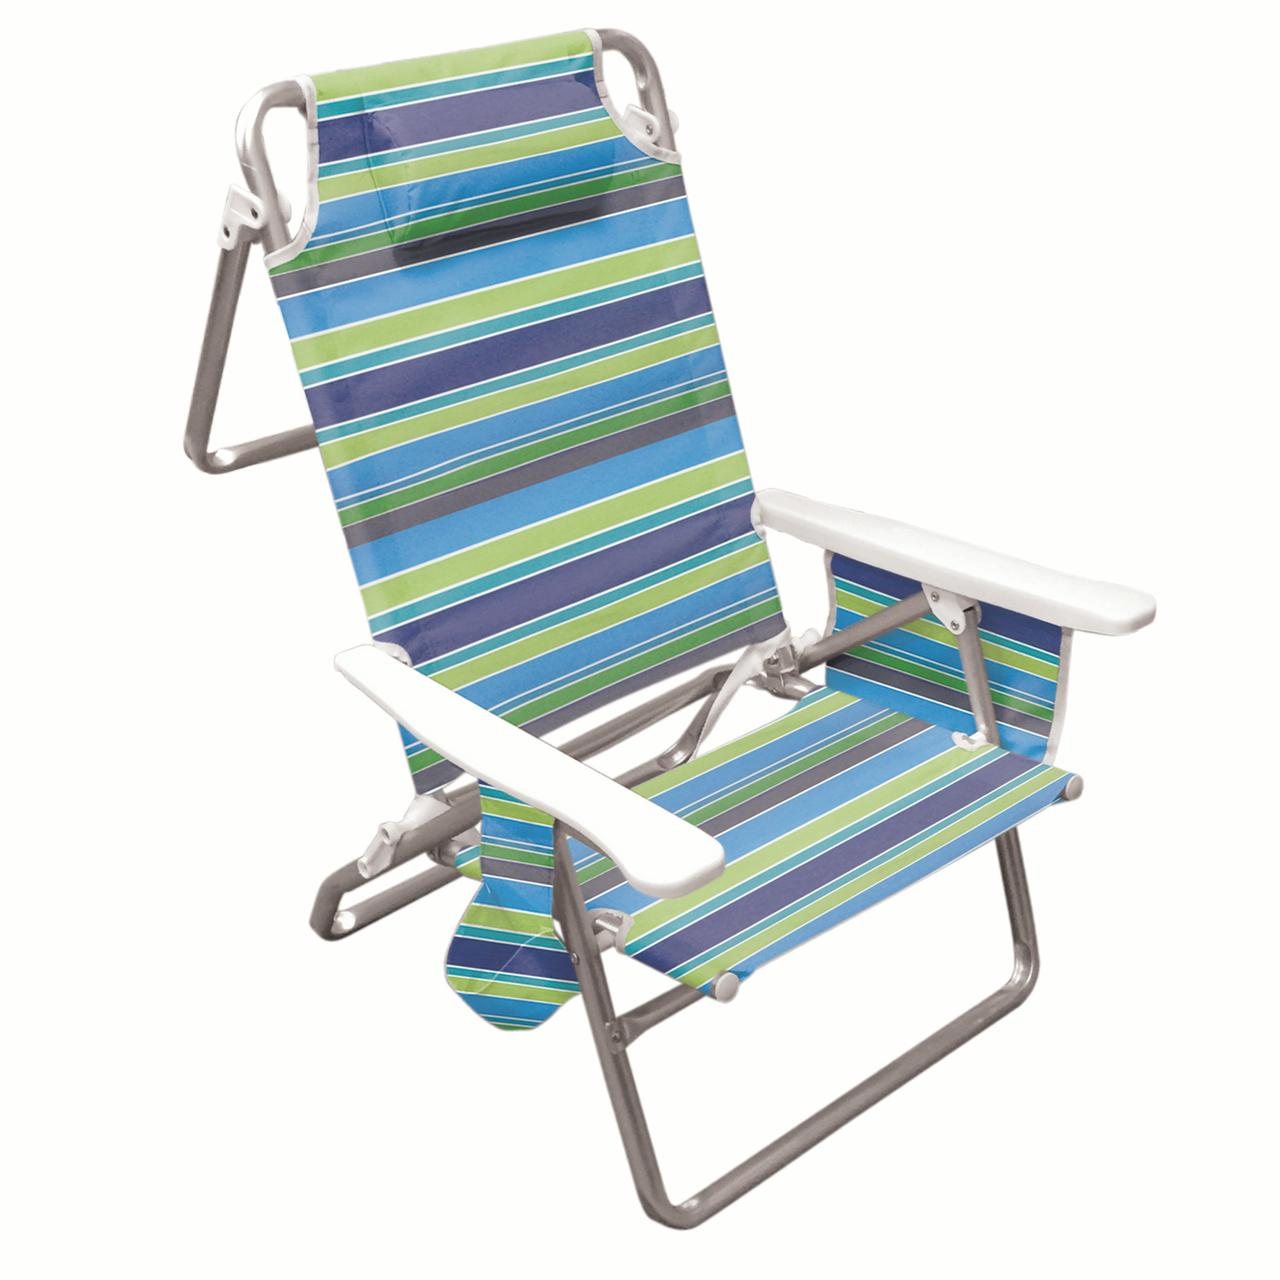 beach chair cup holder hanging ceiling indoor hawaiian tropic five position folding with carrying strap pocket organizer head rest pillow walmart com